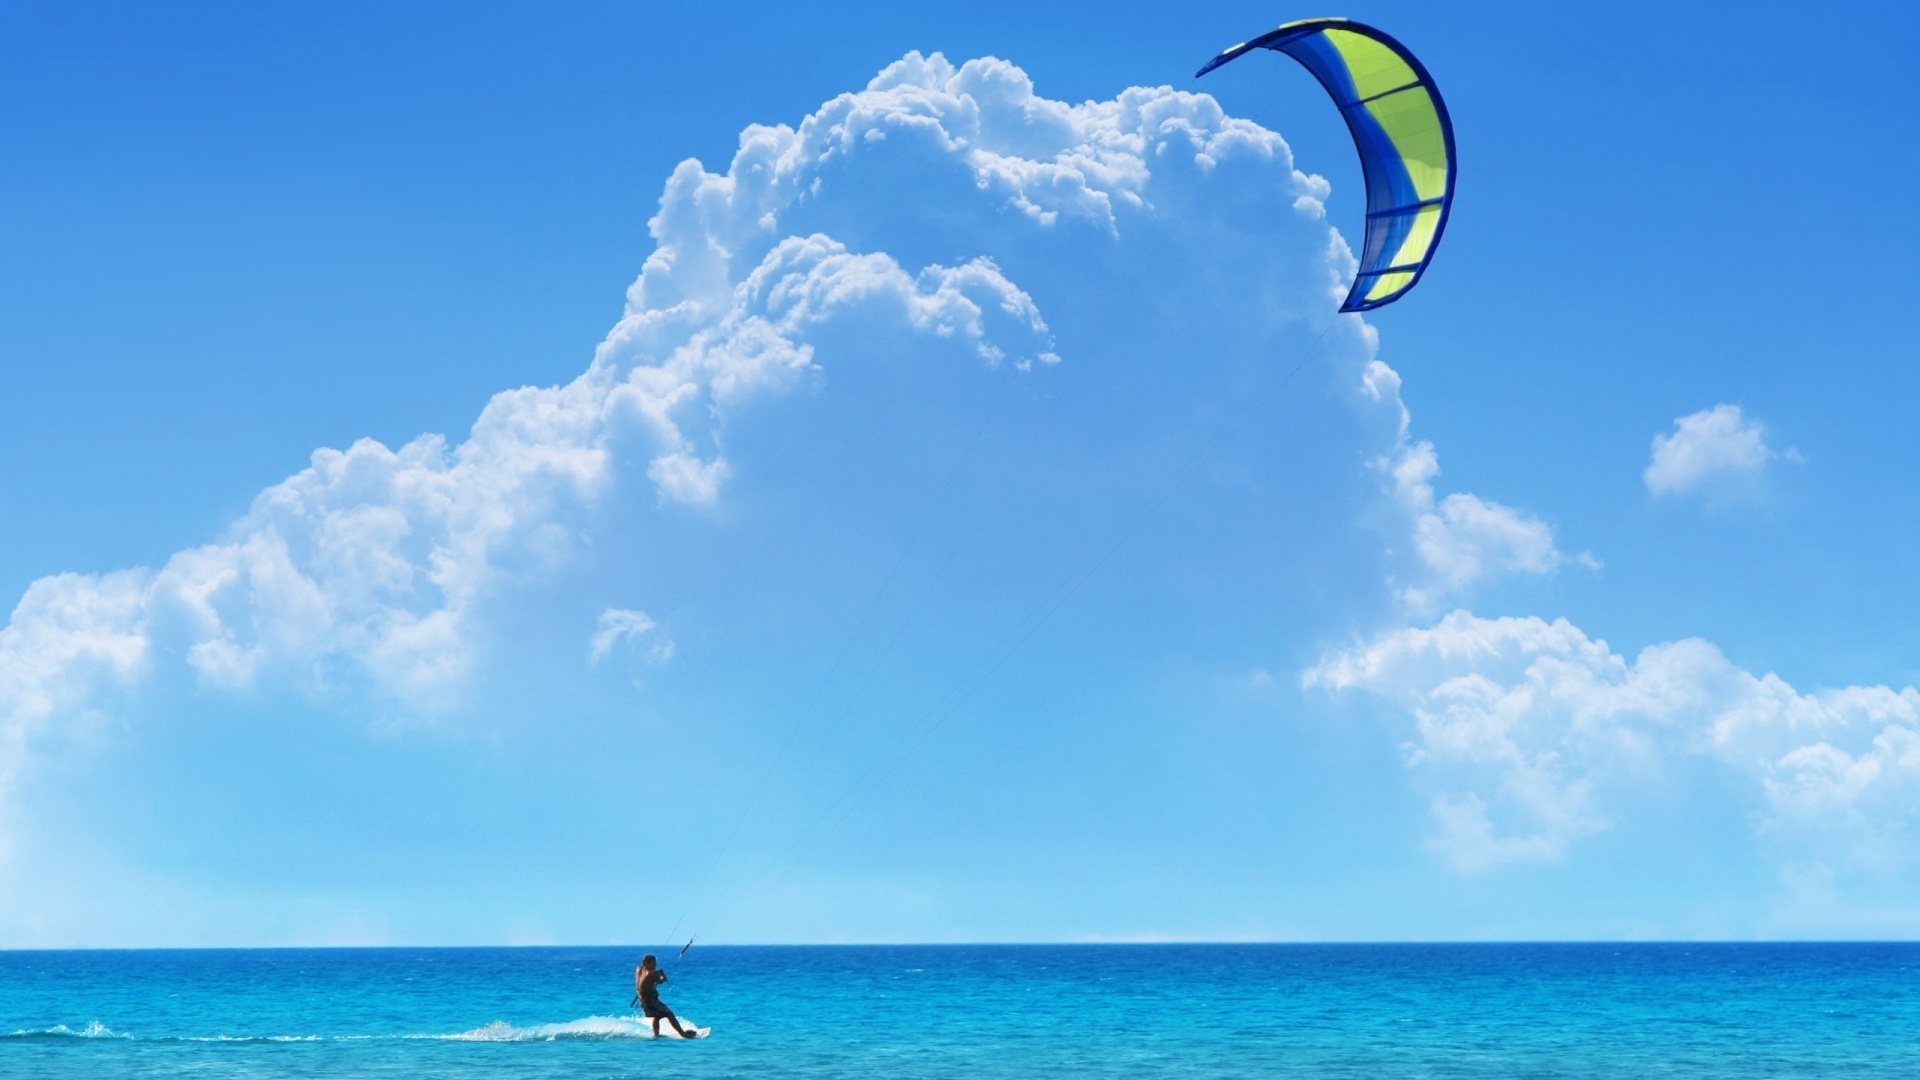 Kitesurfing At Sunset HD desktop wallpaper High Definition